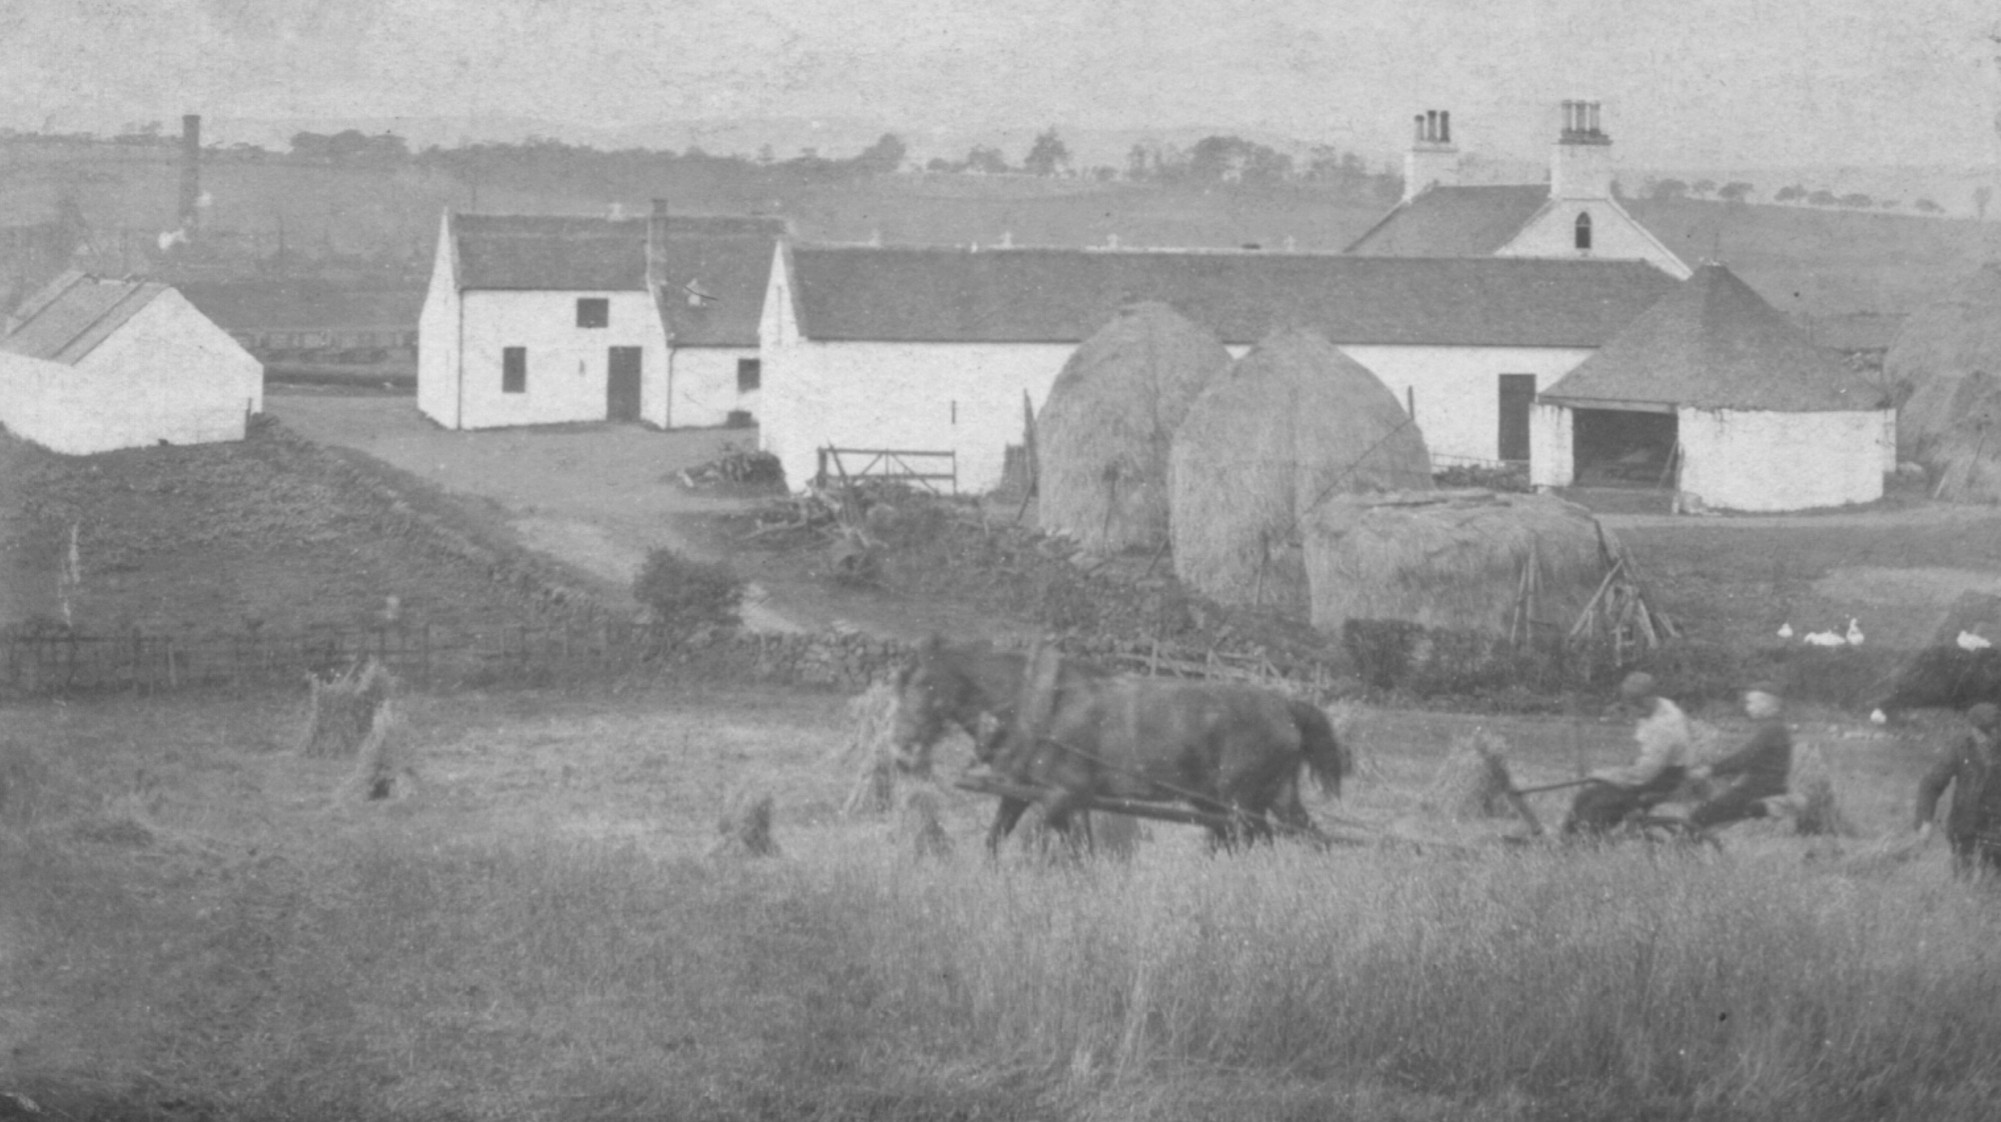 old farmyard, hay ricks and horses